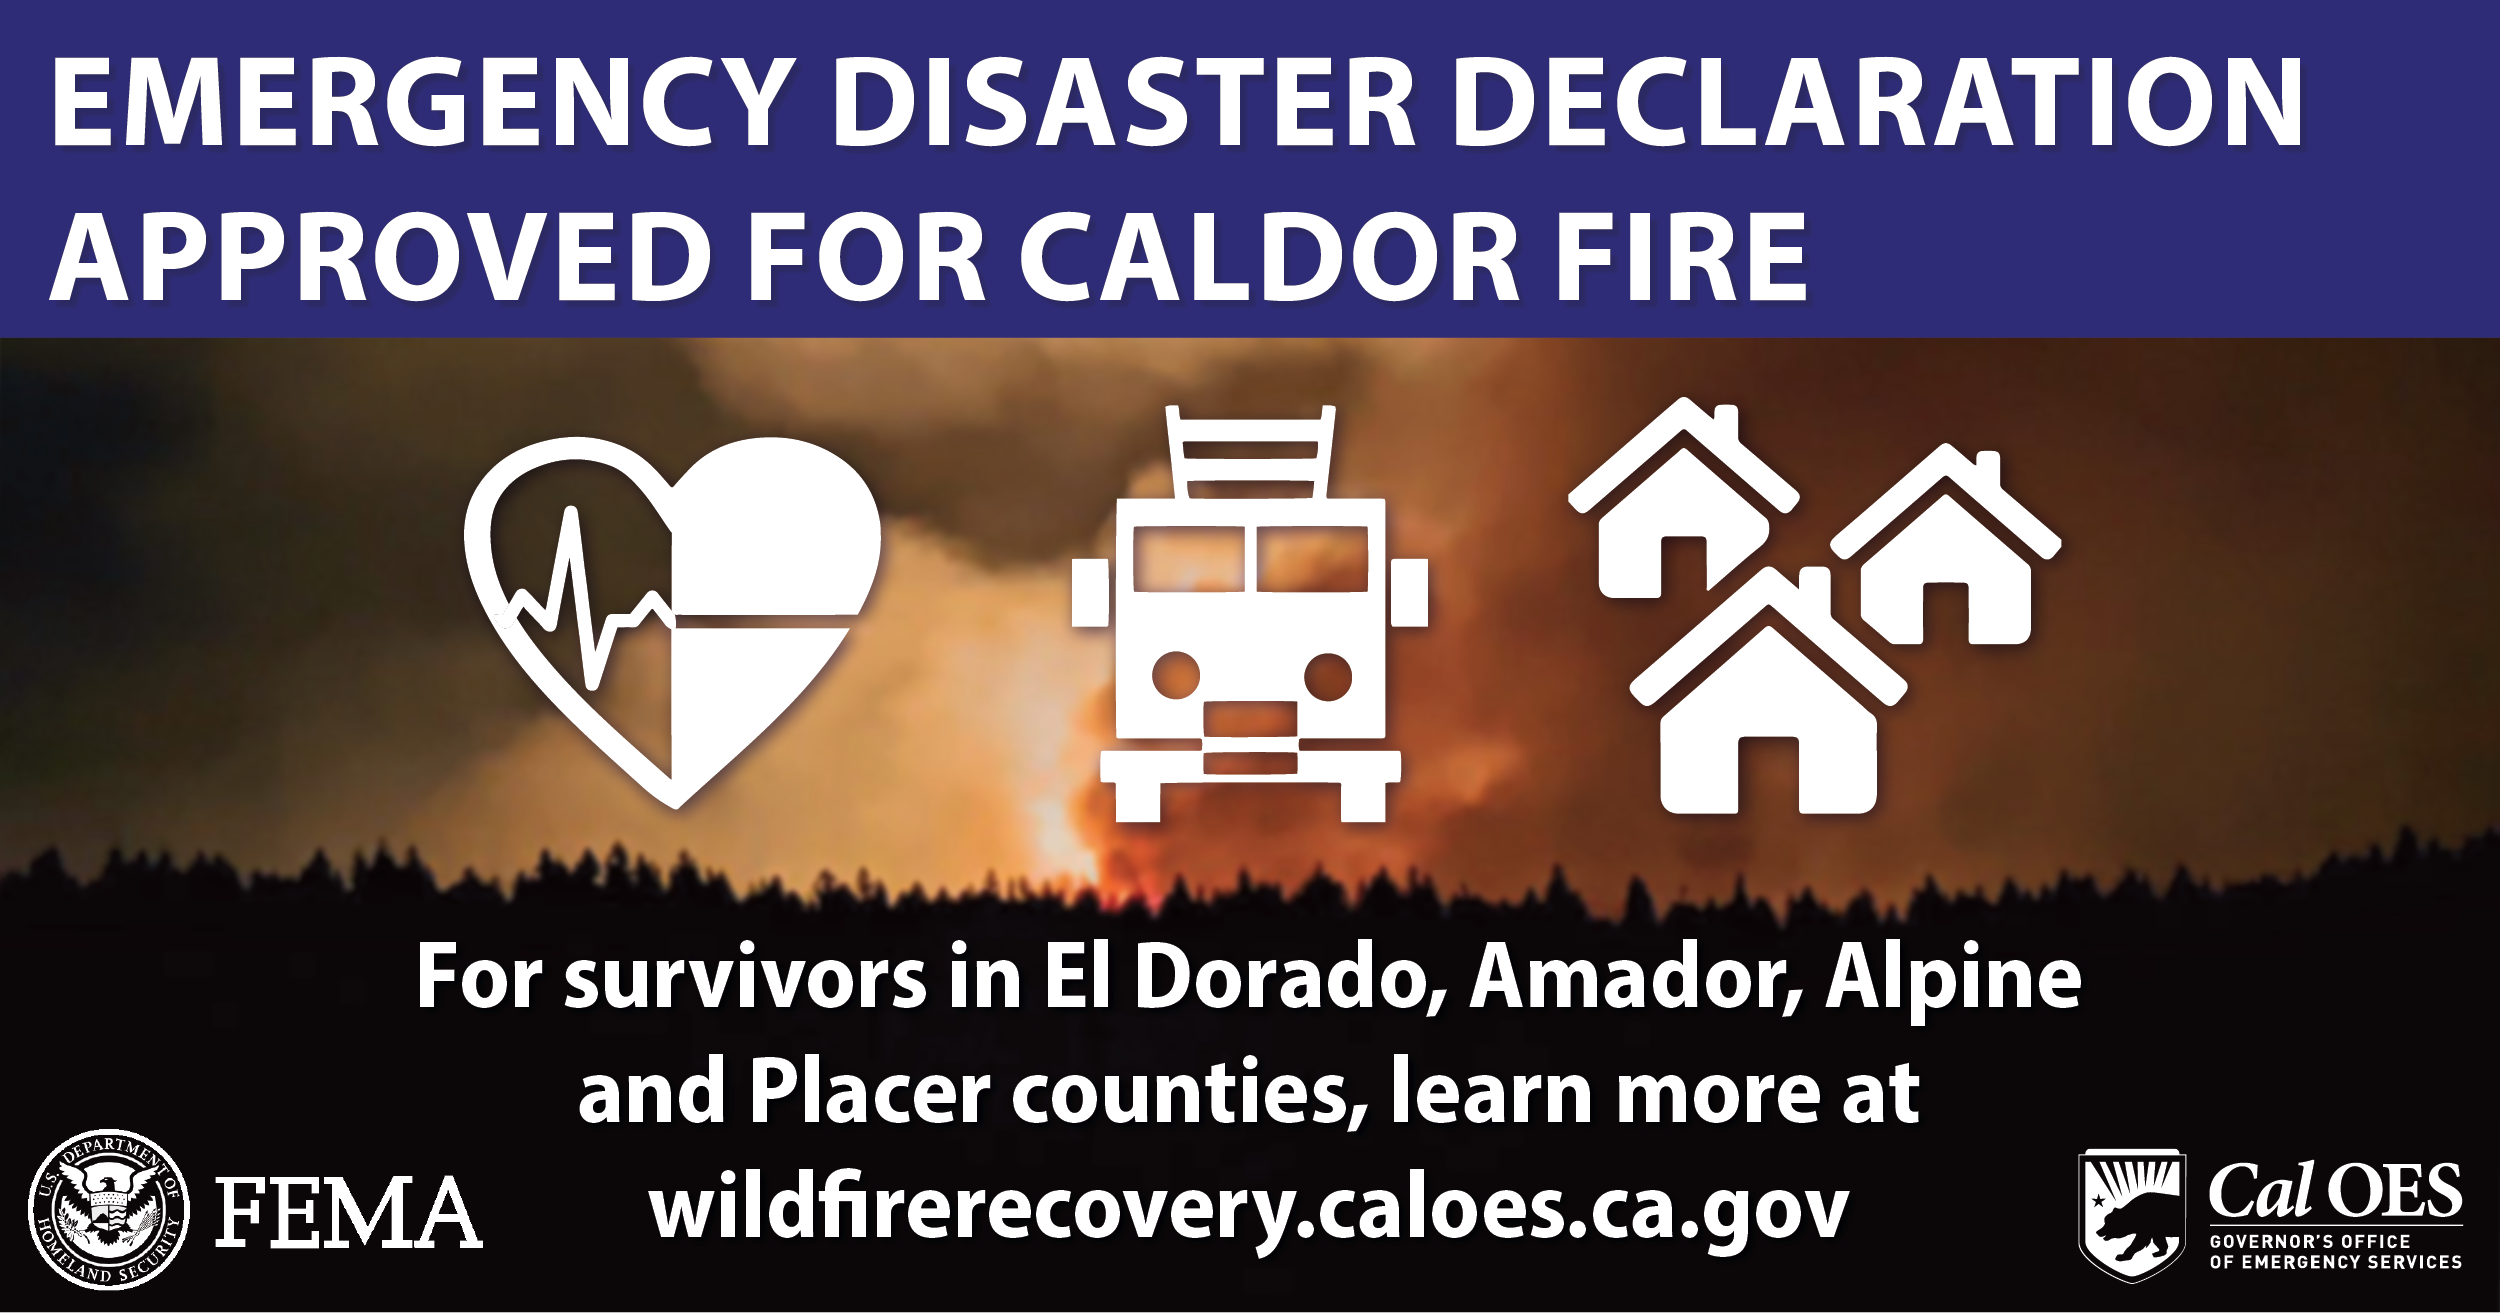 Emergency Disaster Declaration Approved for Caldor Fire